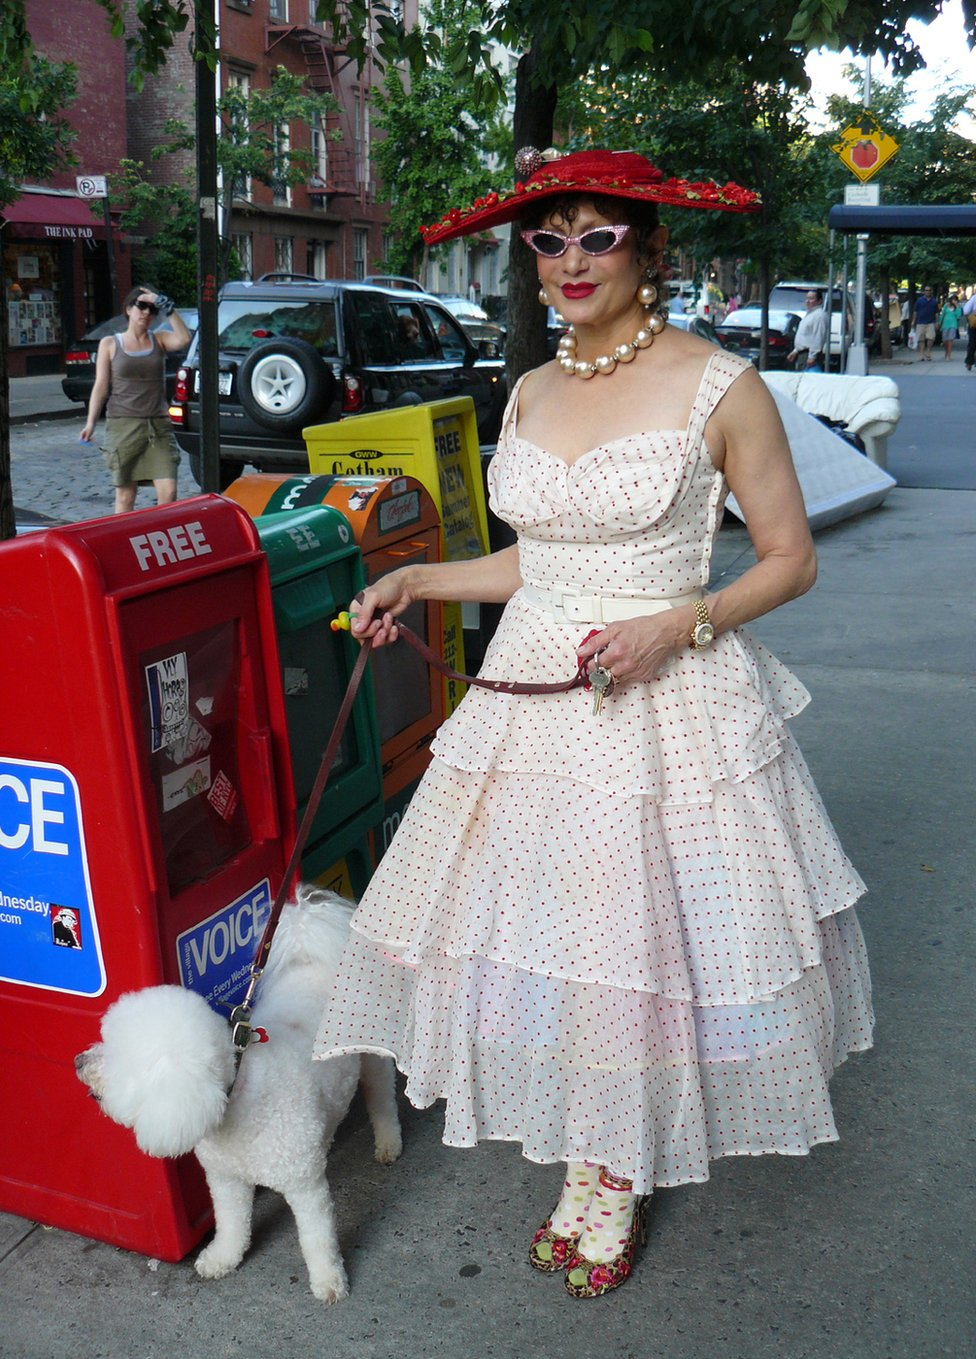 A woman dressed in an 1950s-style polka dot dress walks her dog